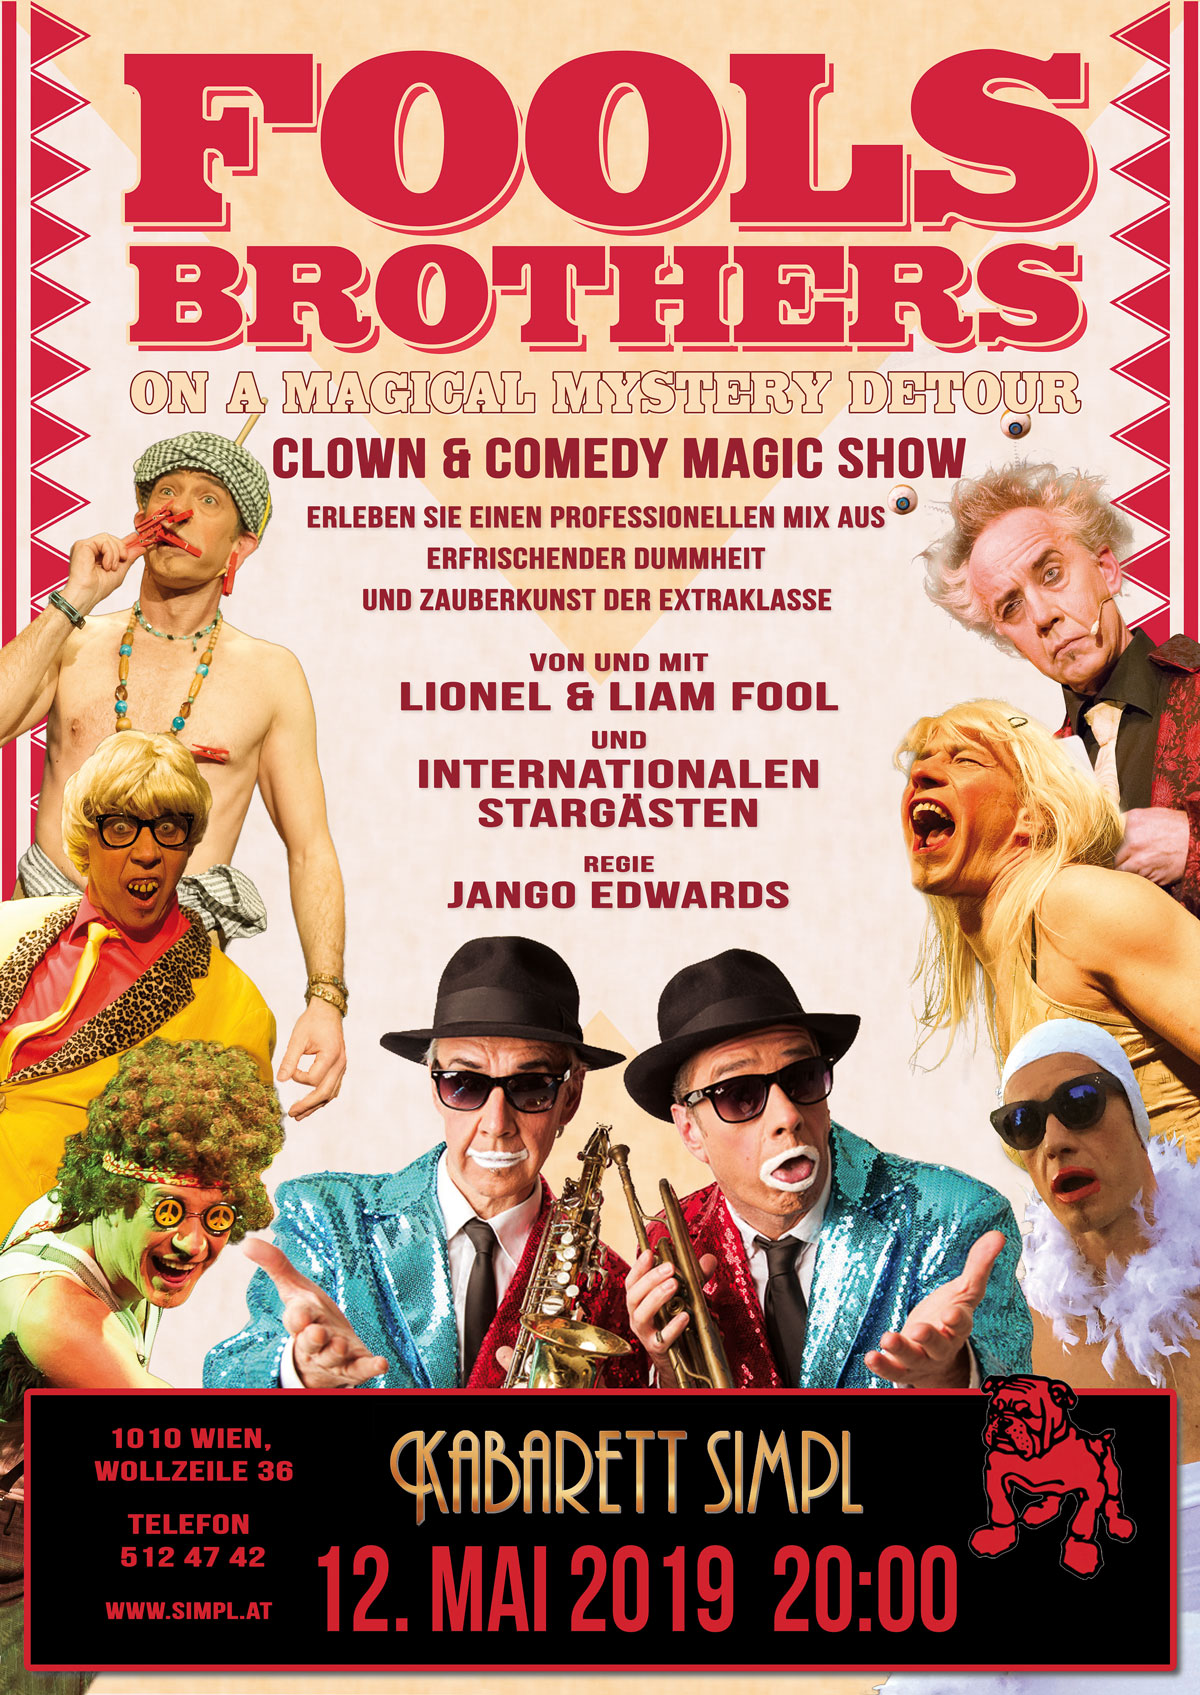 Fools Brothers - On A Magical Mystery Detour Comedy Magic Show